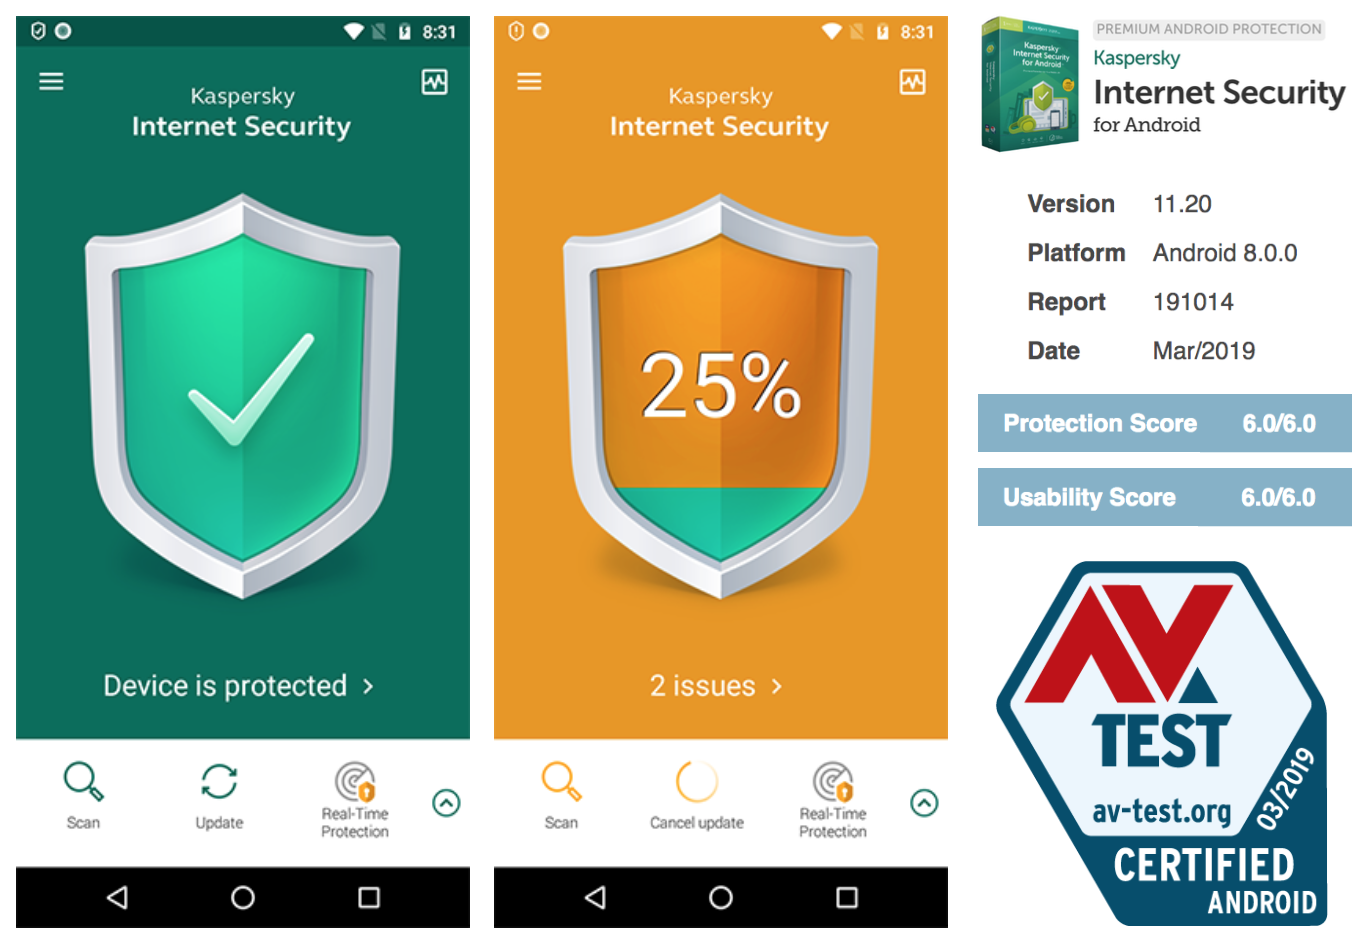 Kaspersky Internet Security for Android enables machine